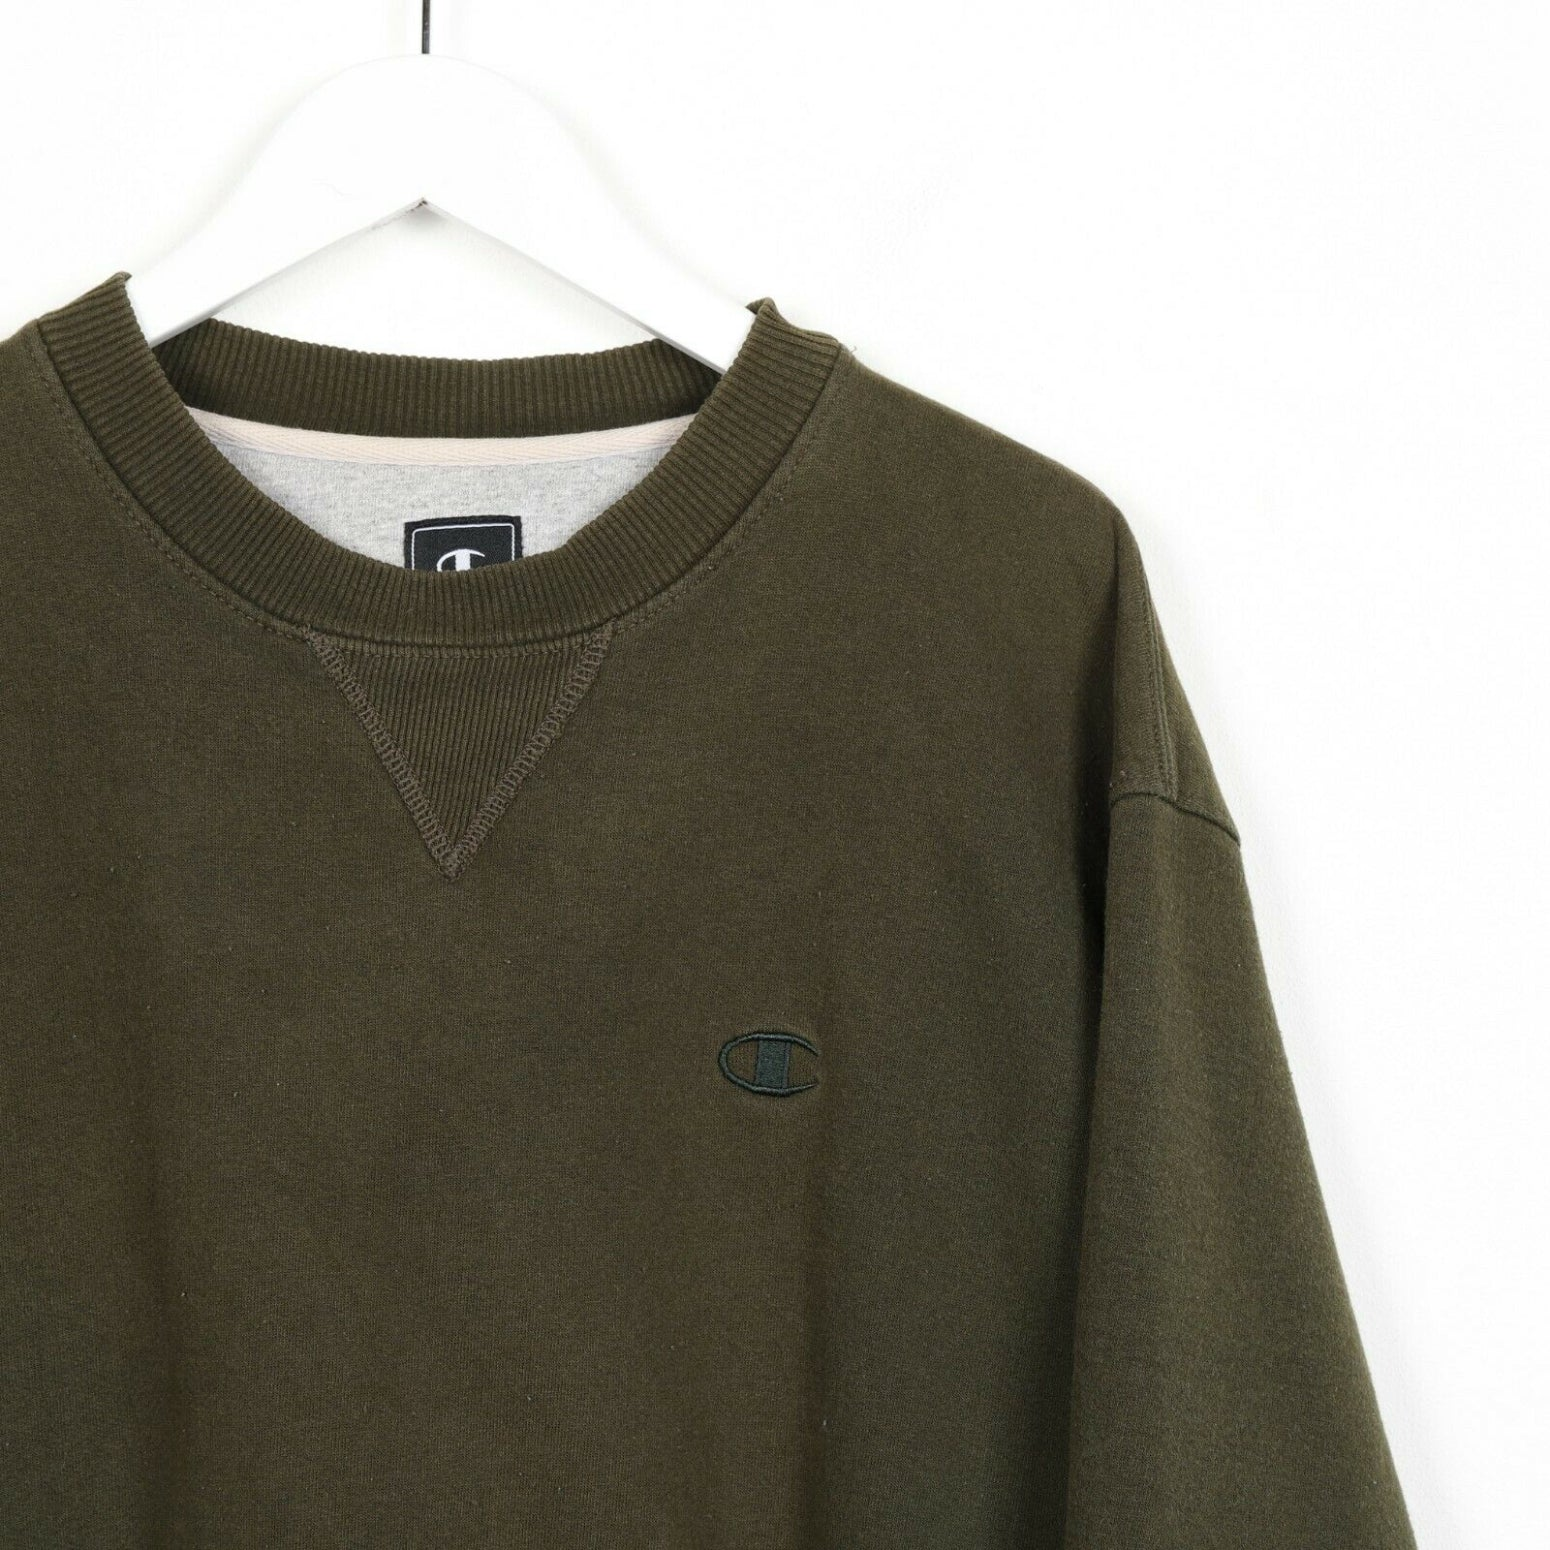 Vintage CHAMPION Small Logo Sweatshirt Jumper Green | Medium M